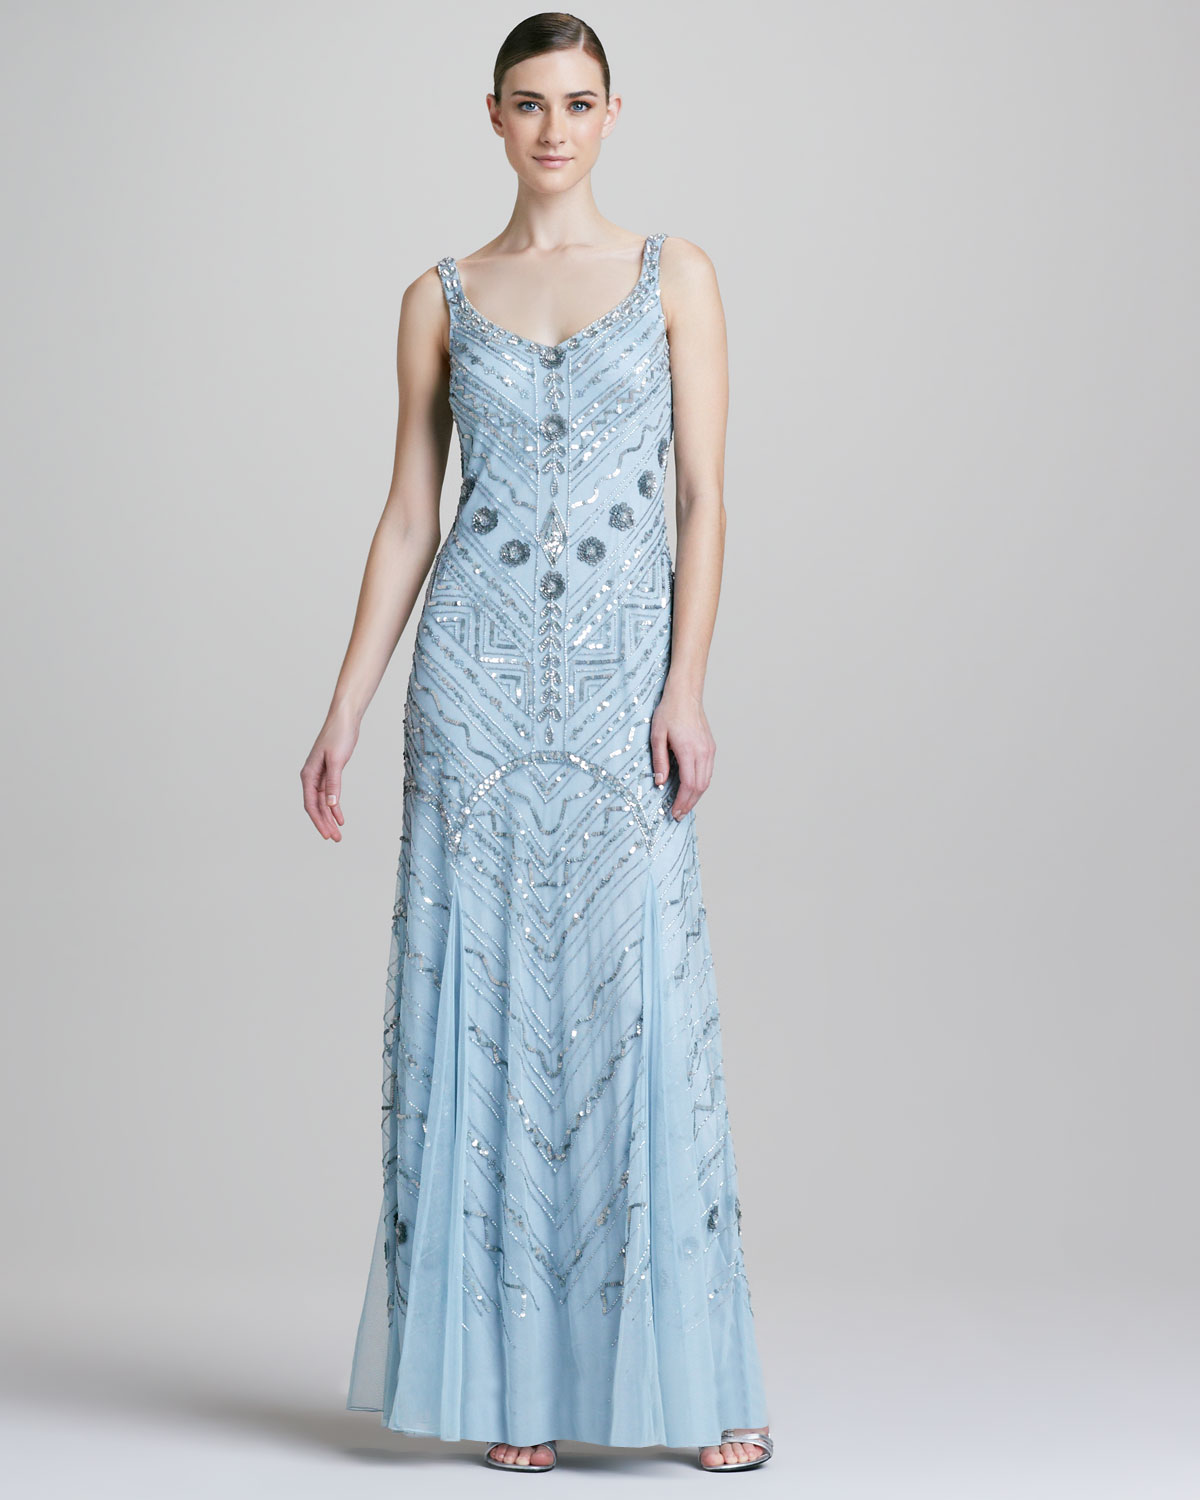 Lyst - Aidan Mattox Beaded Scoopneck Chiffon Gown in Blue